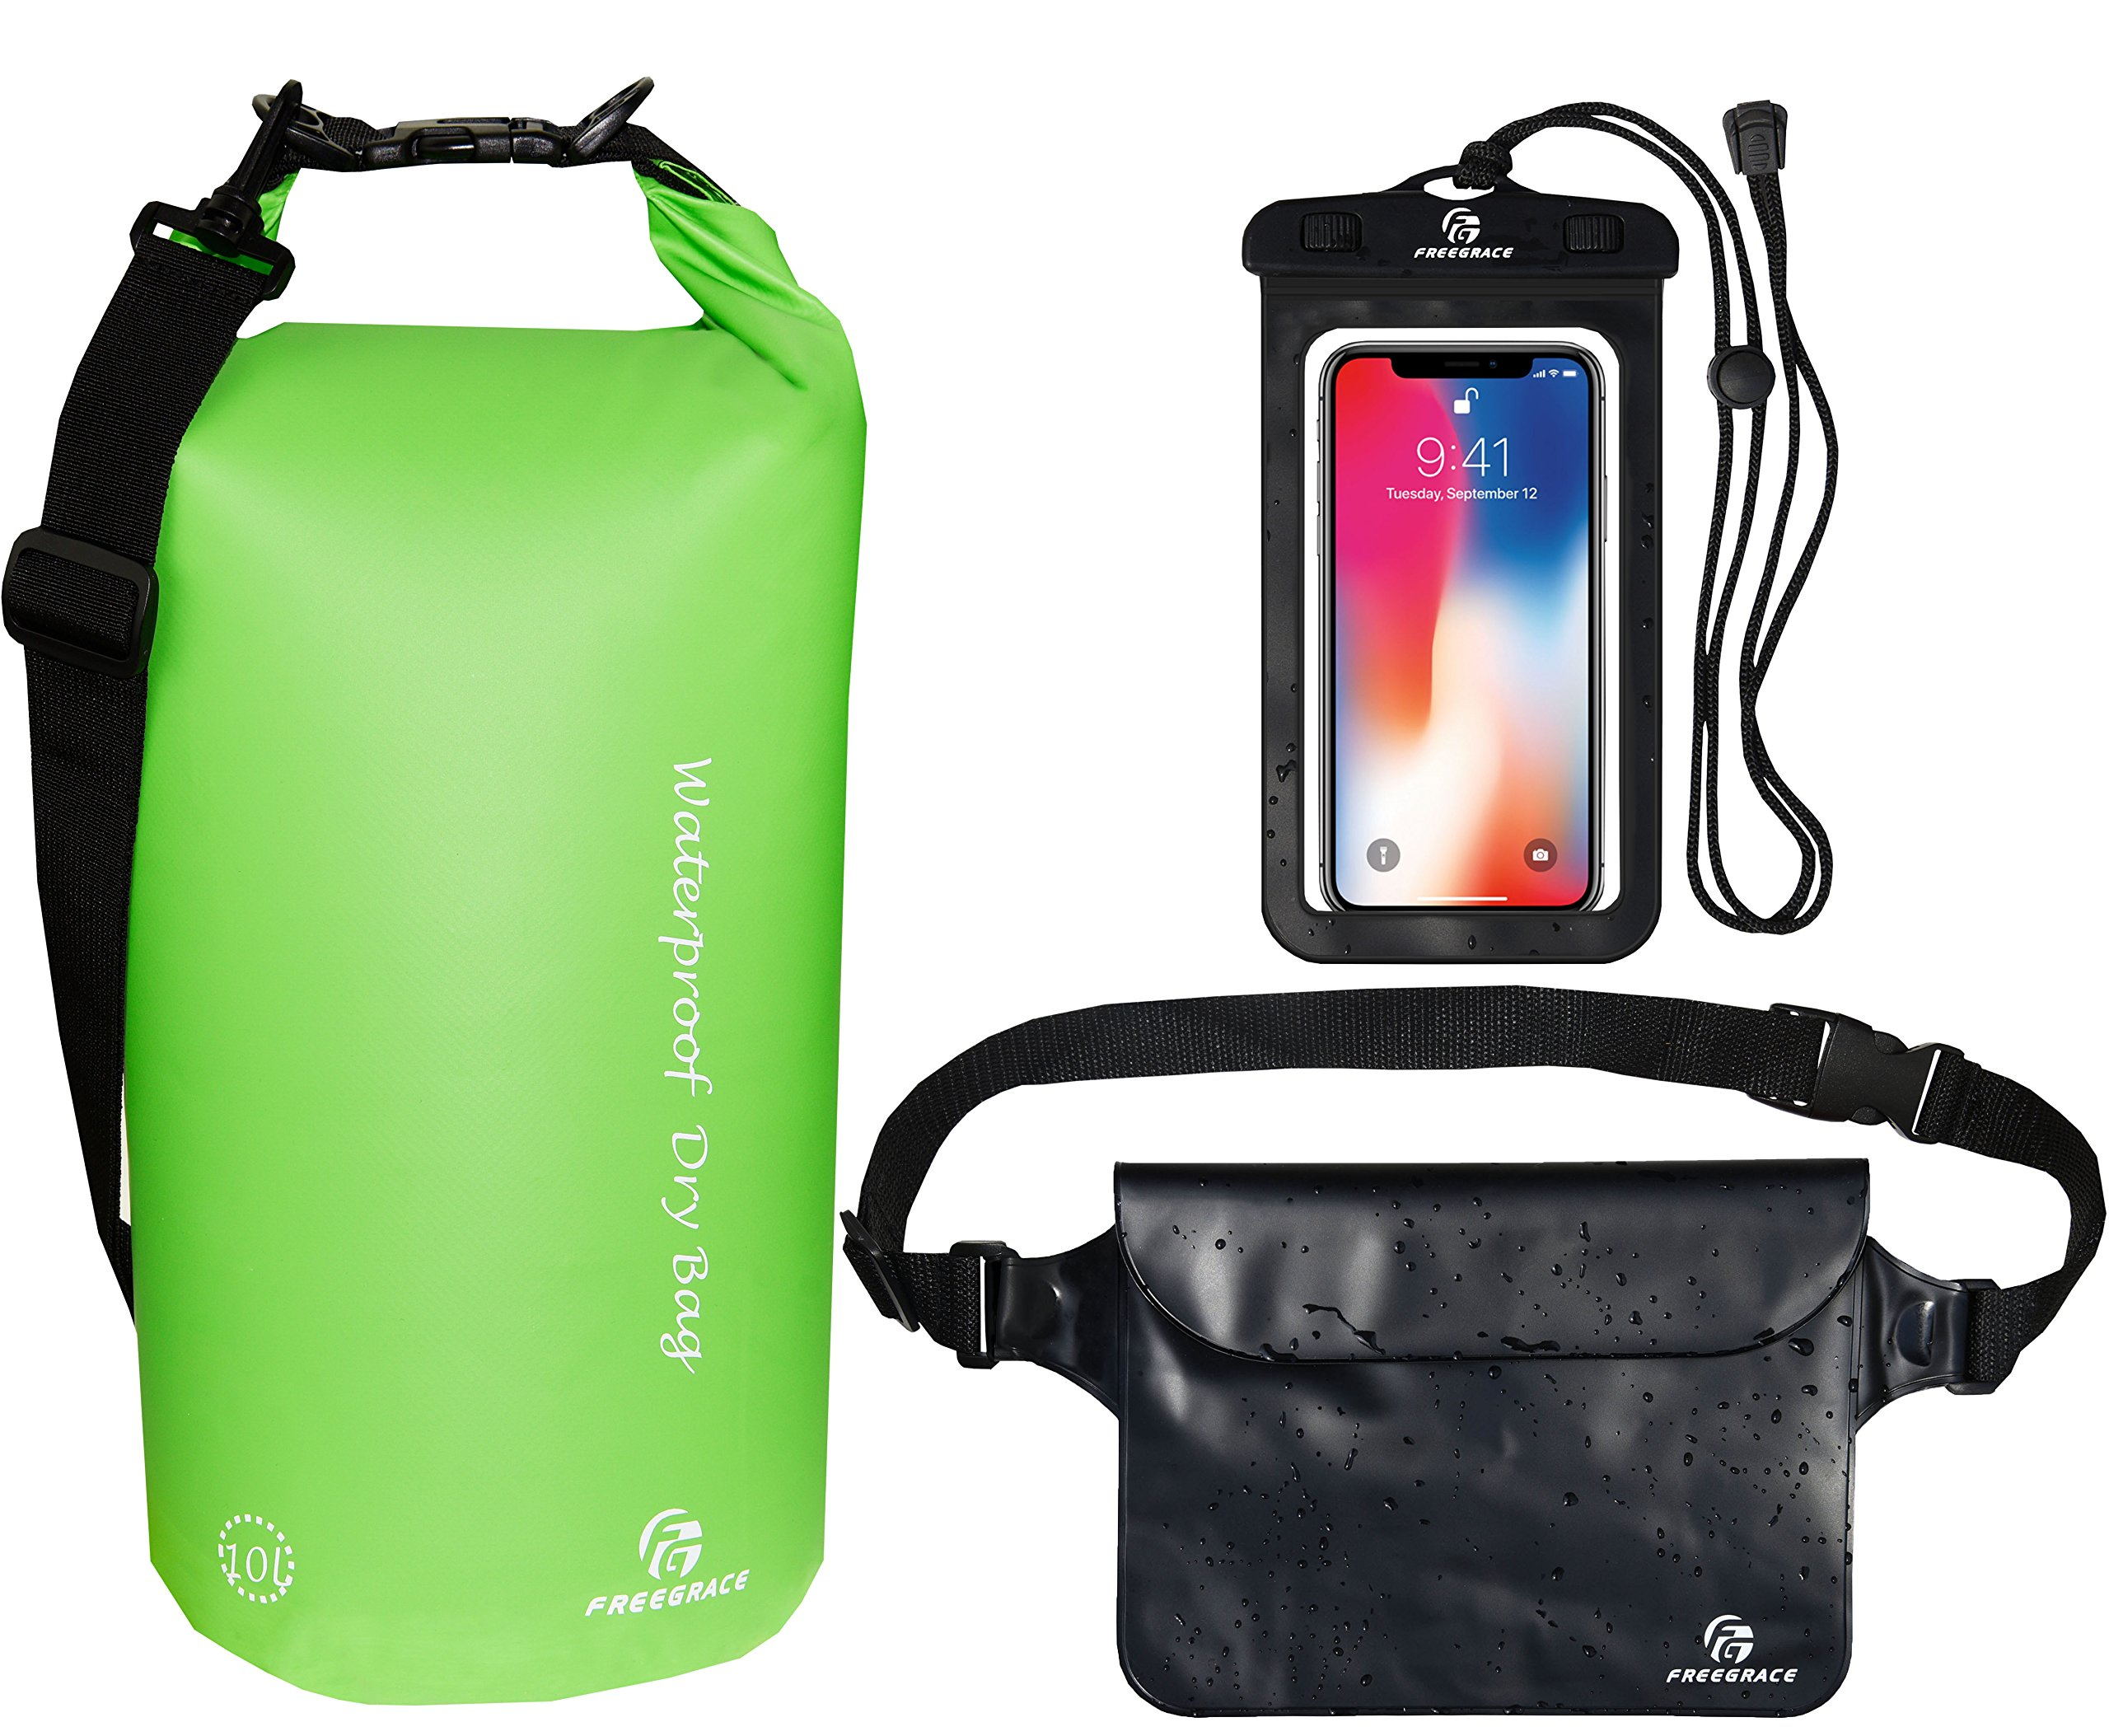 Freegrace Waterproof Dry Bags Set of 3 Dry Bag with 2 Zip Lock Seals & Detachable Shoulder Strap, Waist Pouch & Phone Case - Can Be Submerged Into Water (Green, 20L)